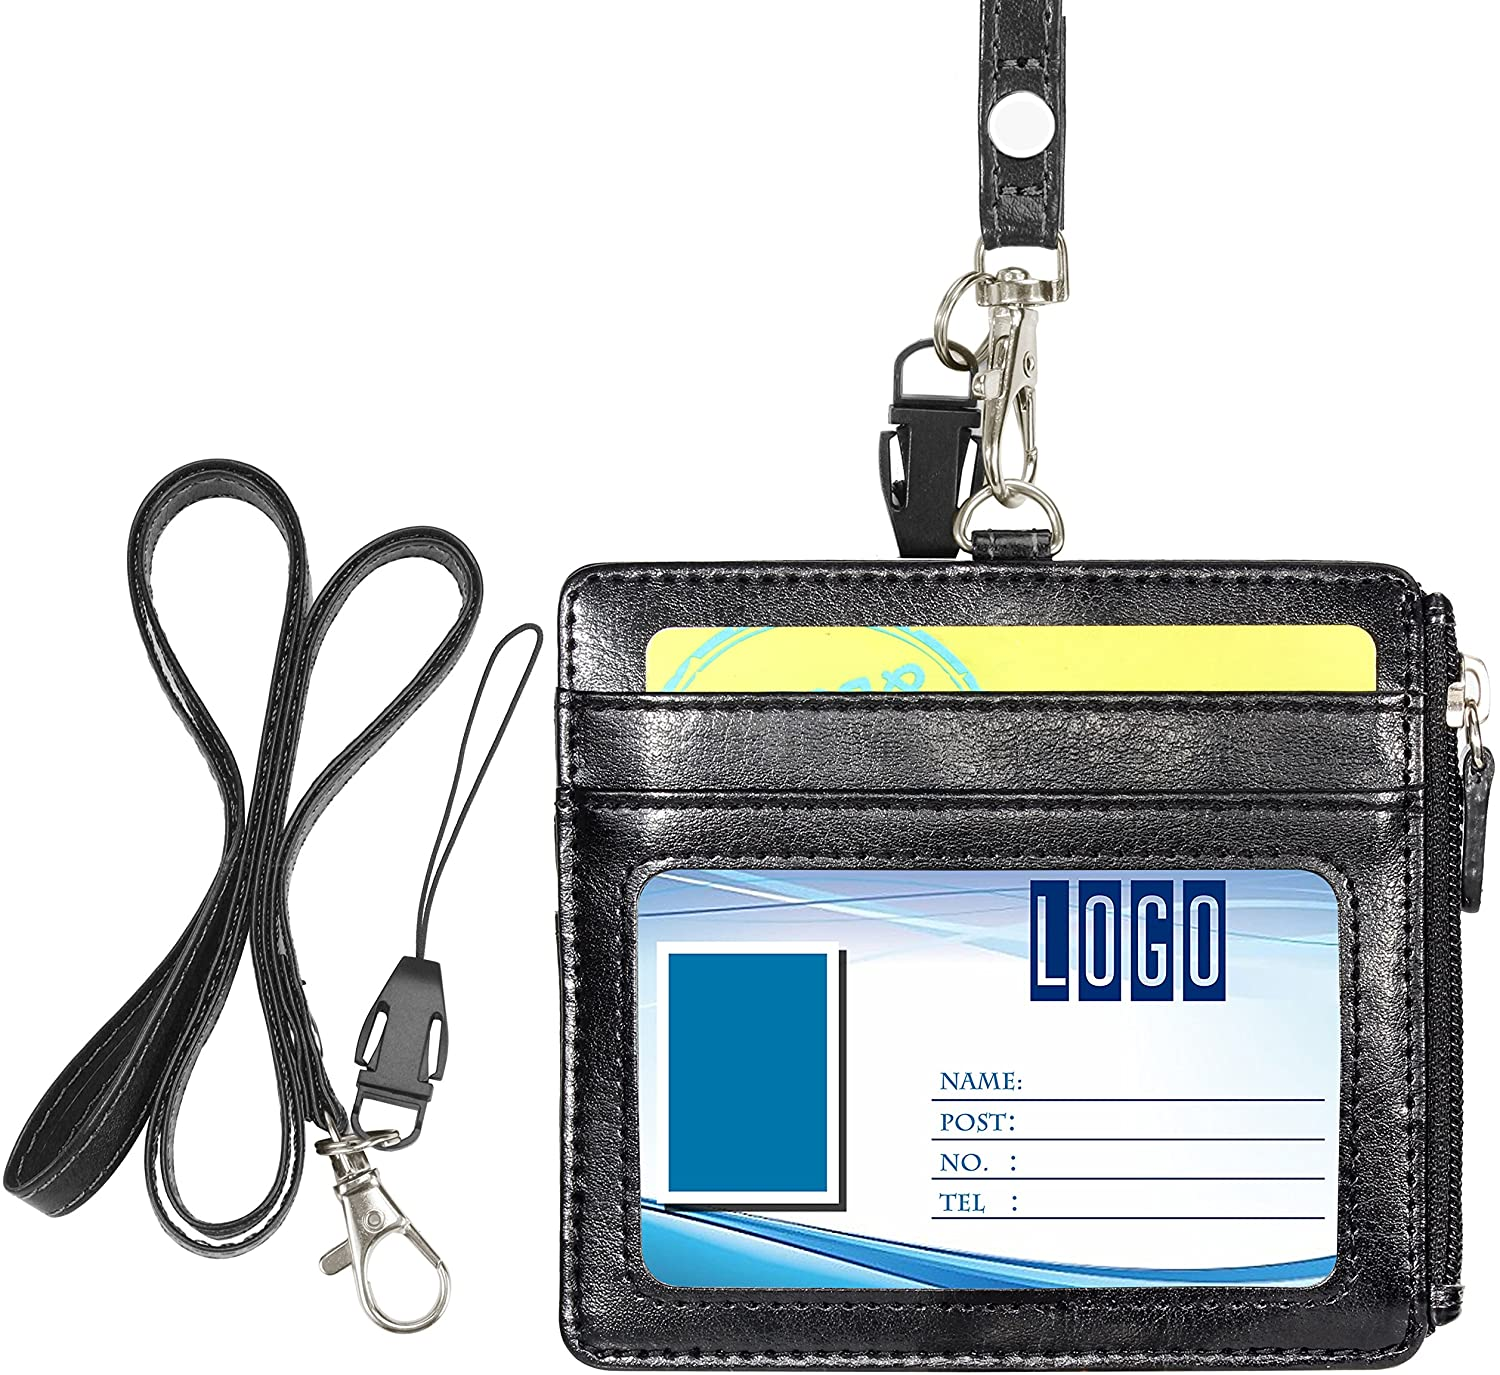 Badge Holder with Zip, Wisdompro 2-Sided PU Leather ID Badge Holder with 1 ID Window, 4 Card Slots, 1 Side Zipper Pocket and 1 Piece 20 Inch Leather Neck Lanyard Strap - Black (Horizontal)